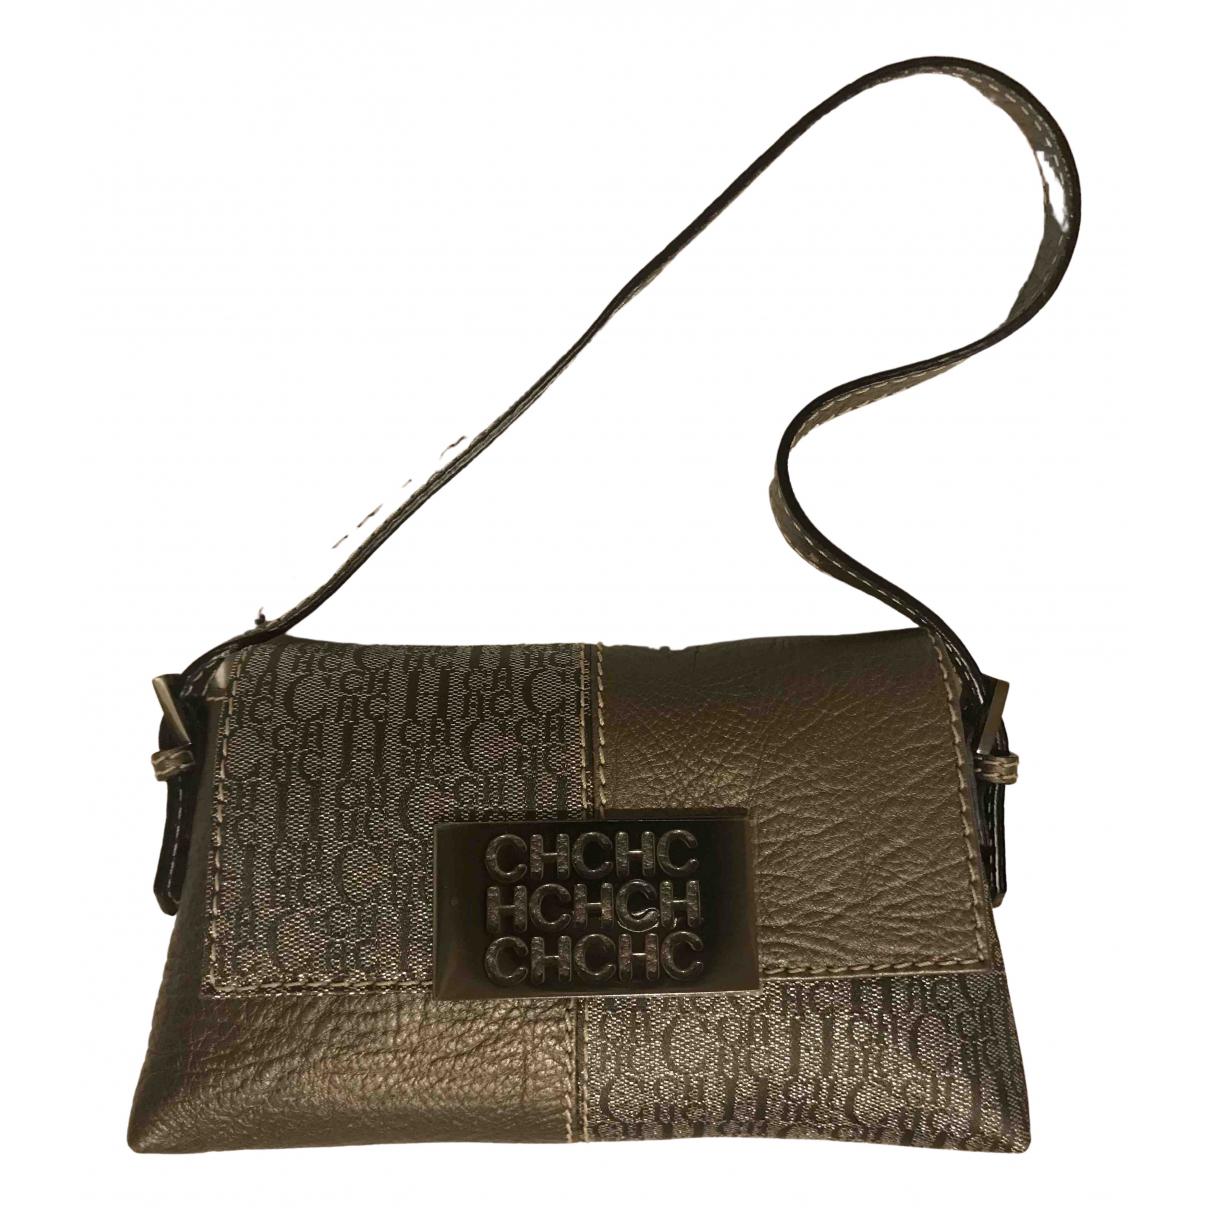 Carolina Herrera N Khaki Leather handbag for Women N